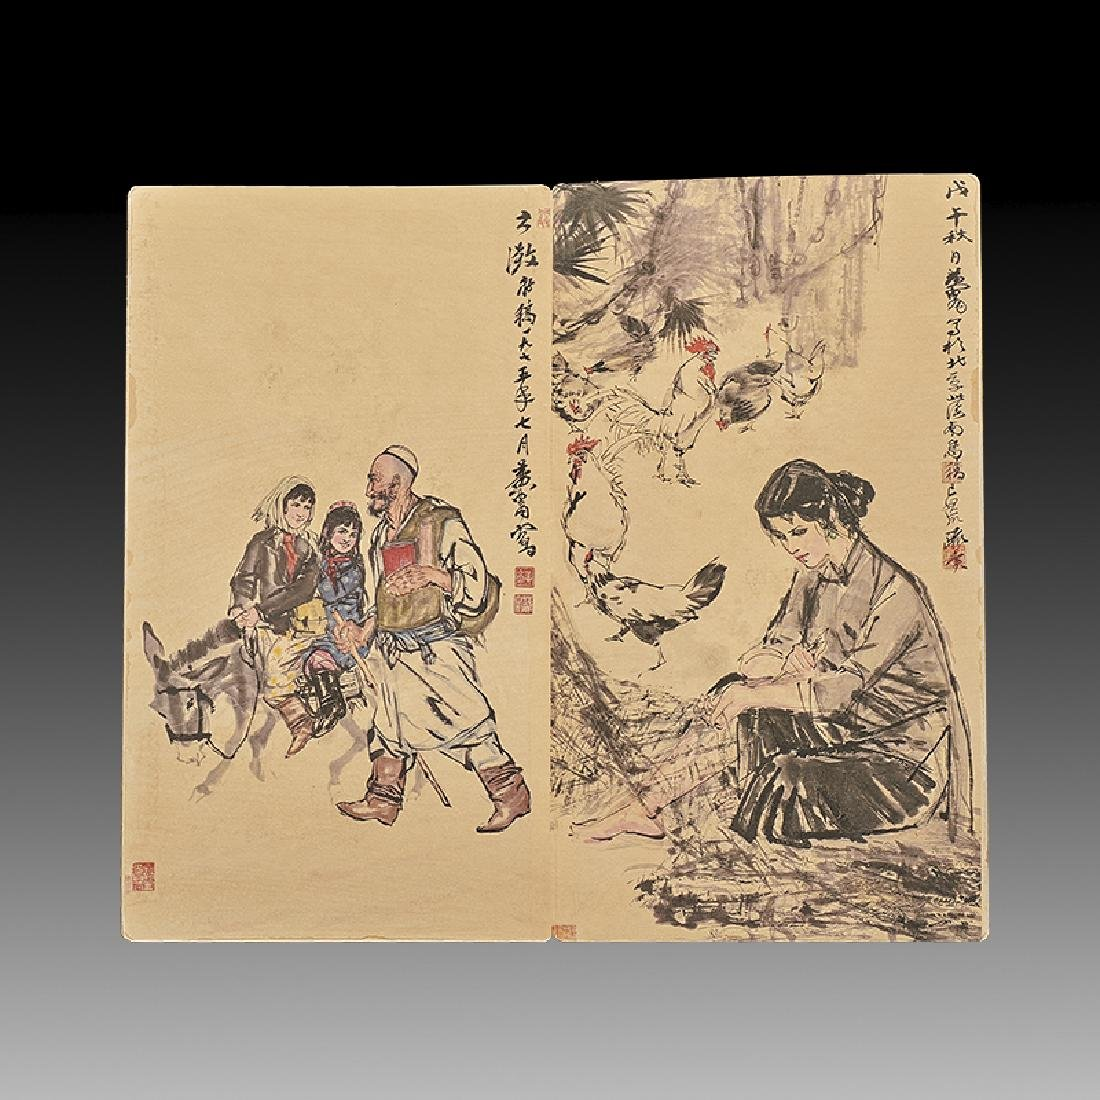 Rare chinese painting album by Hang zhou (1925-1997) - 5